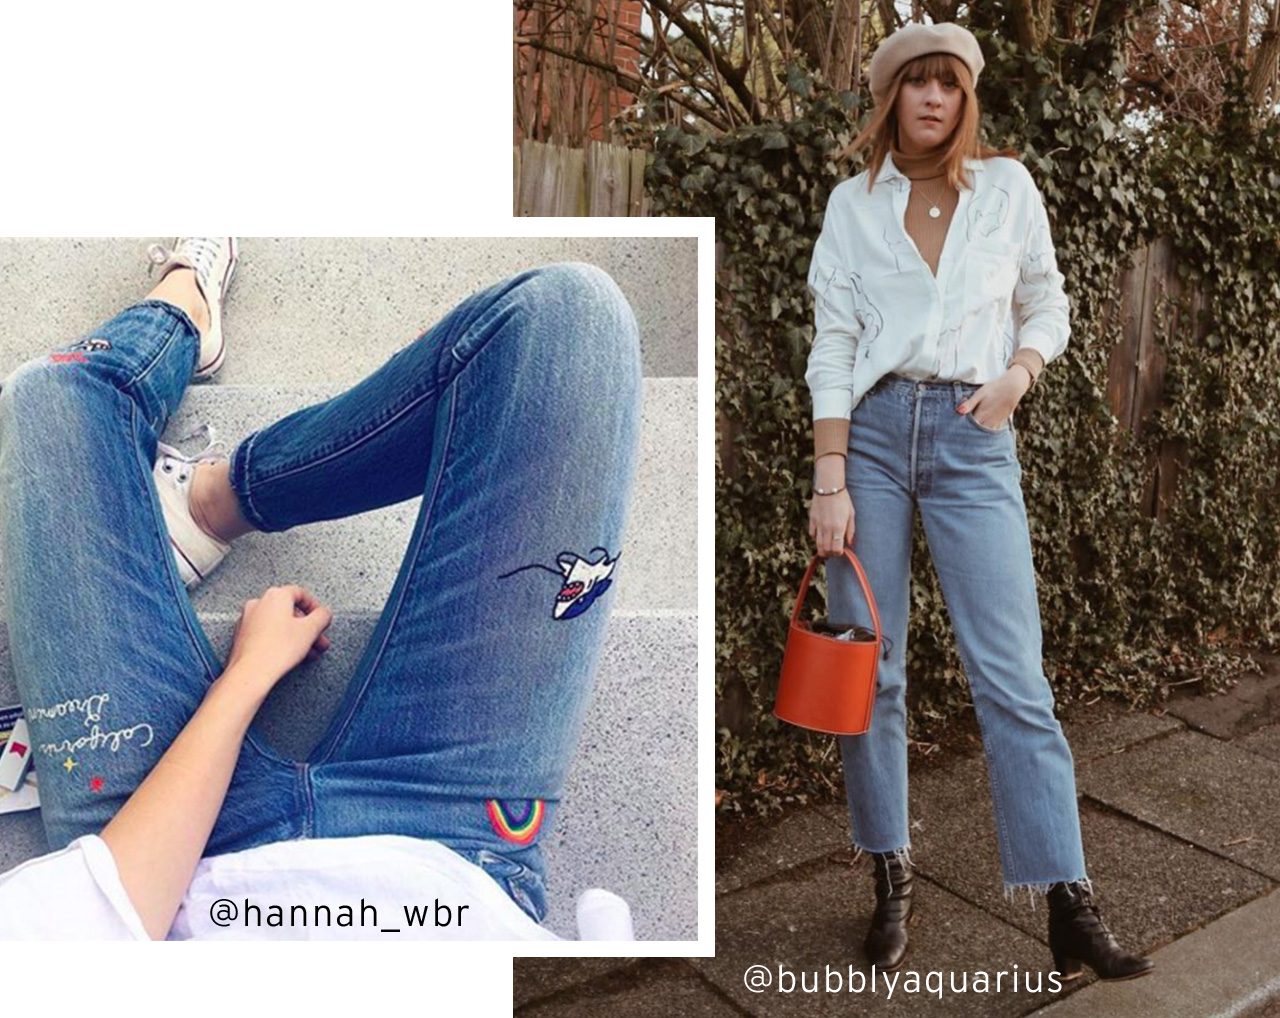 Fashion trends come and go. But a pair of original 501 Jeans never go out of style!  Customer review from LevisFan507